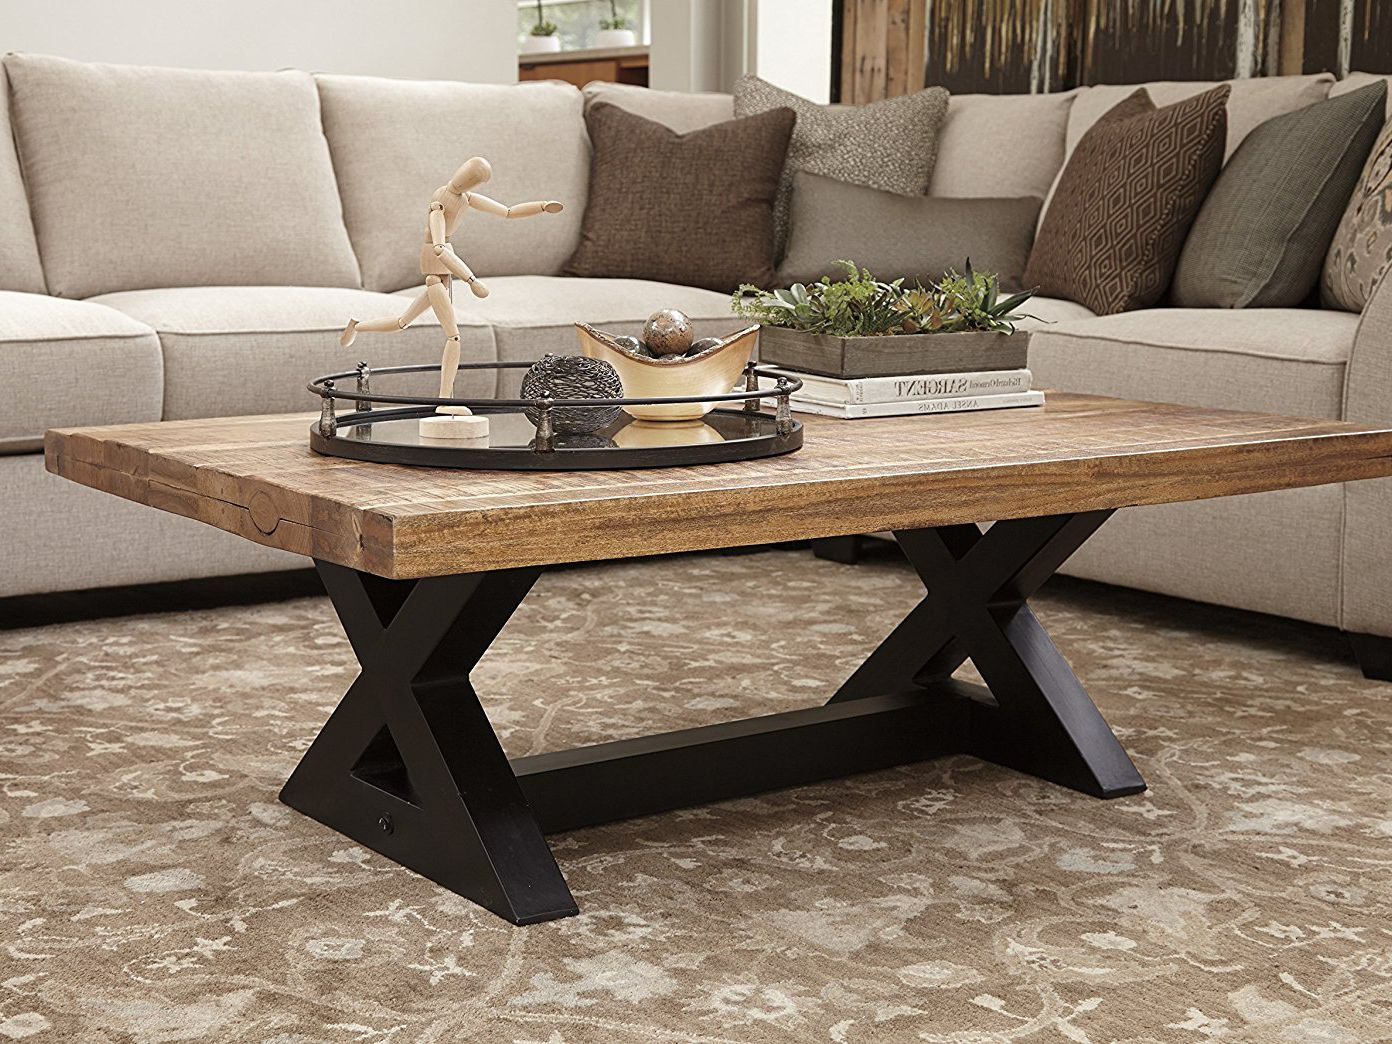 The 8 Best Coffee Tables Of 2019 In Favorite Simple Living Manhattan Coffee Tables (View 9 of 20)